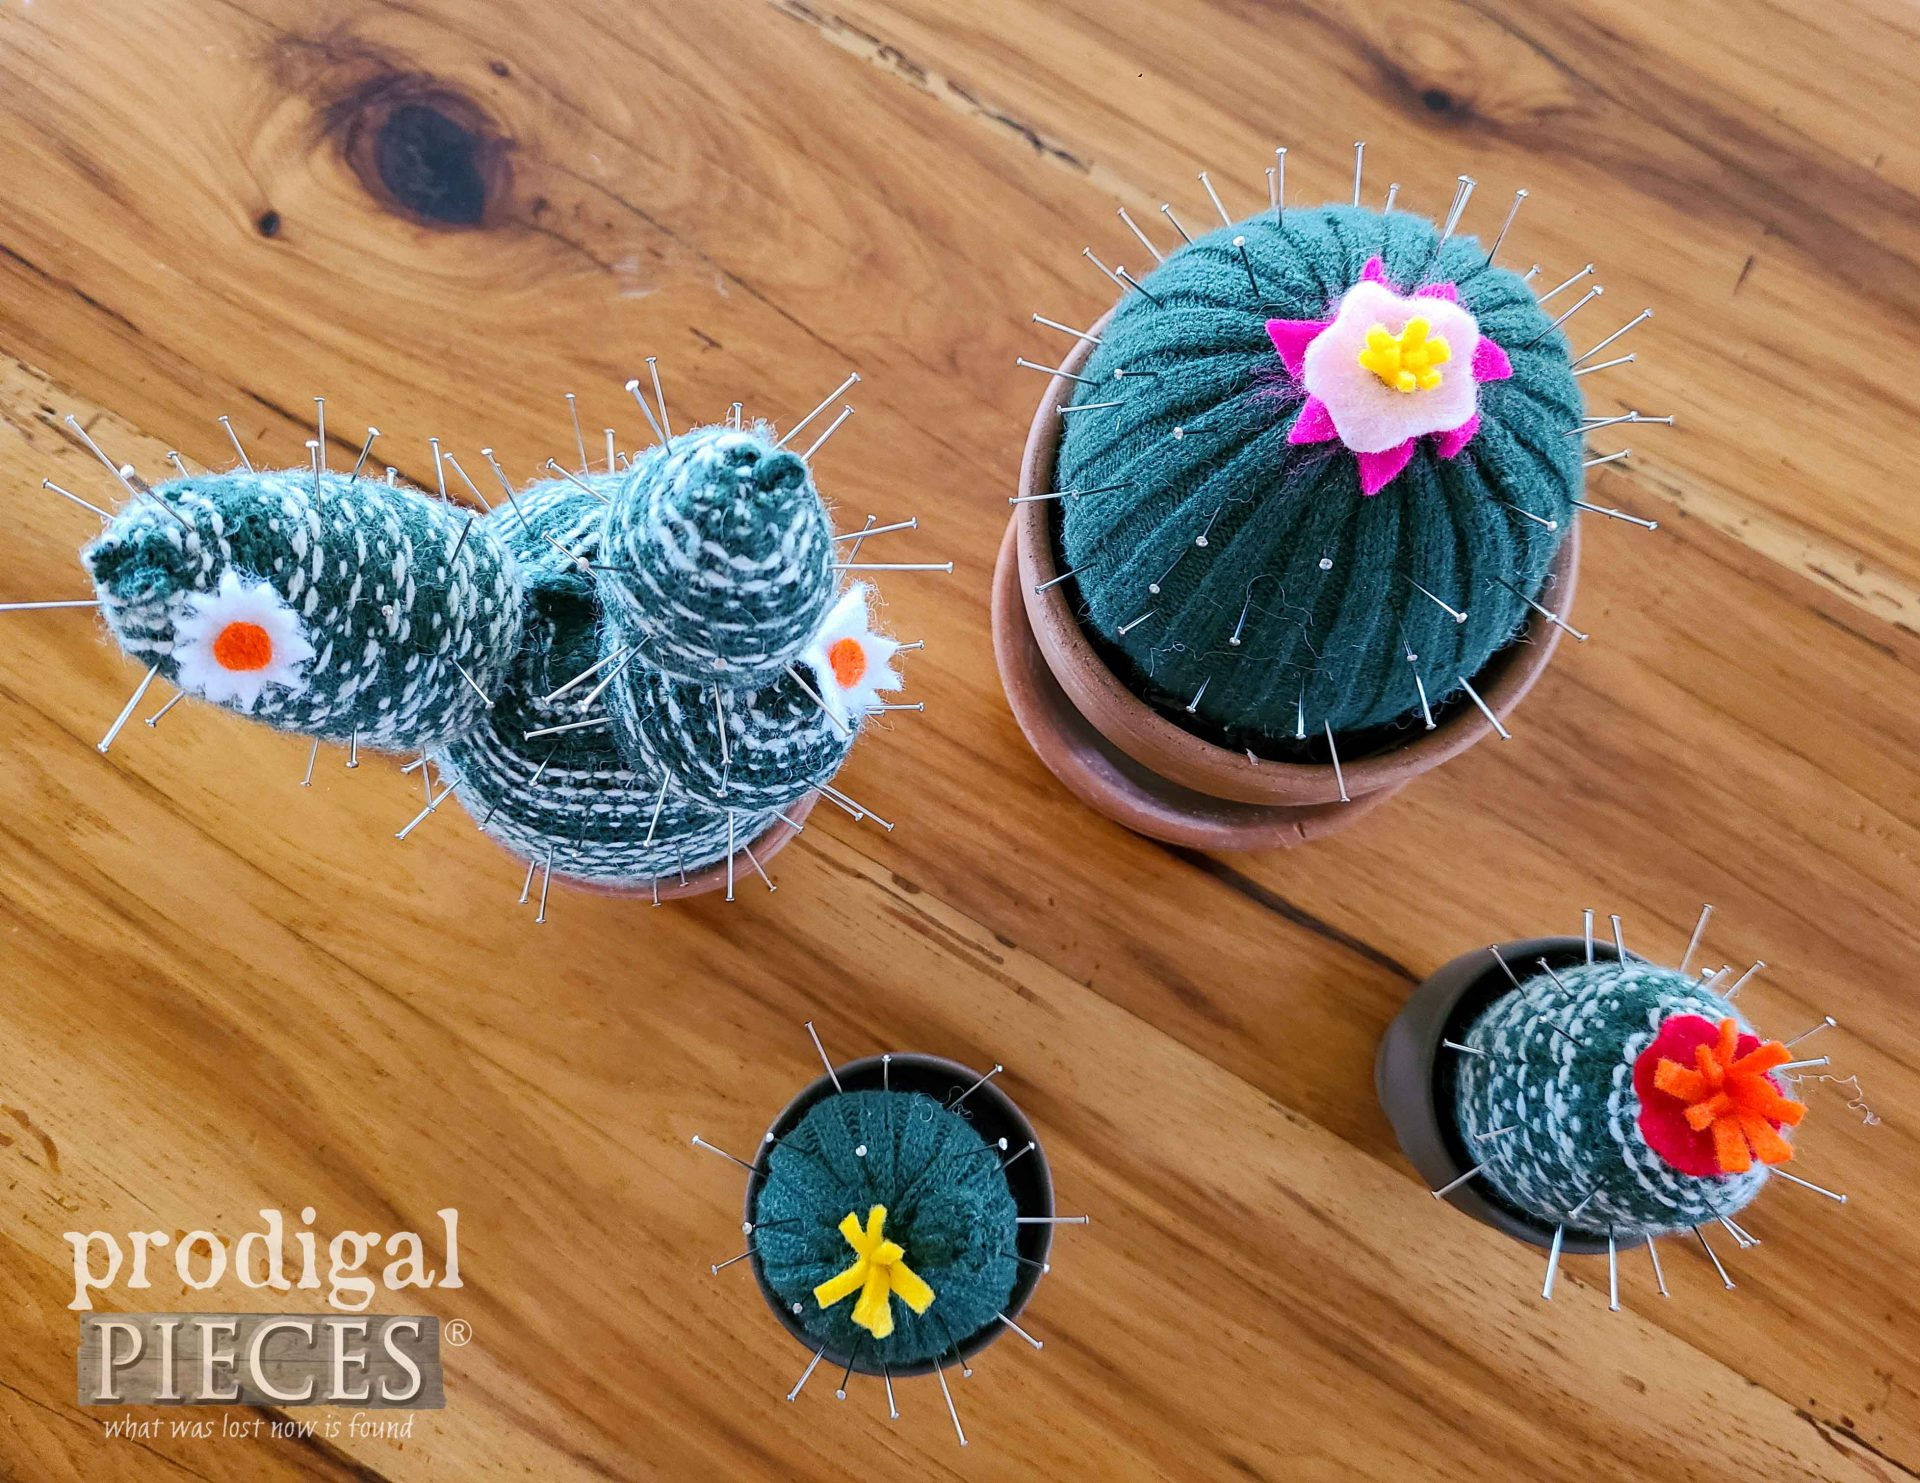 Top View of Upcycled Sweater Pincushions by Larissa of Prodigal Pieces | prodigalpieces.com #prodigalpieces #crafts #handmade #sewing #refashion